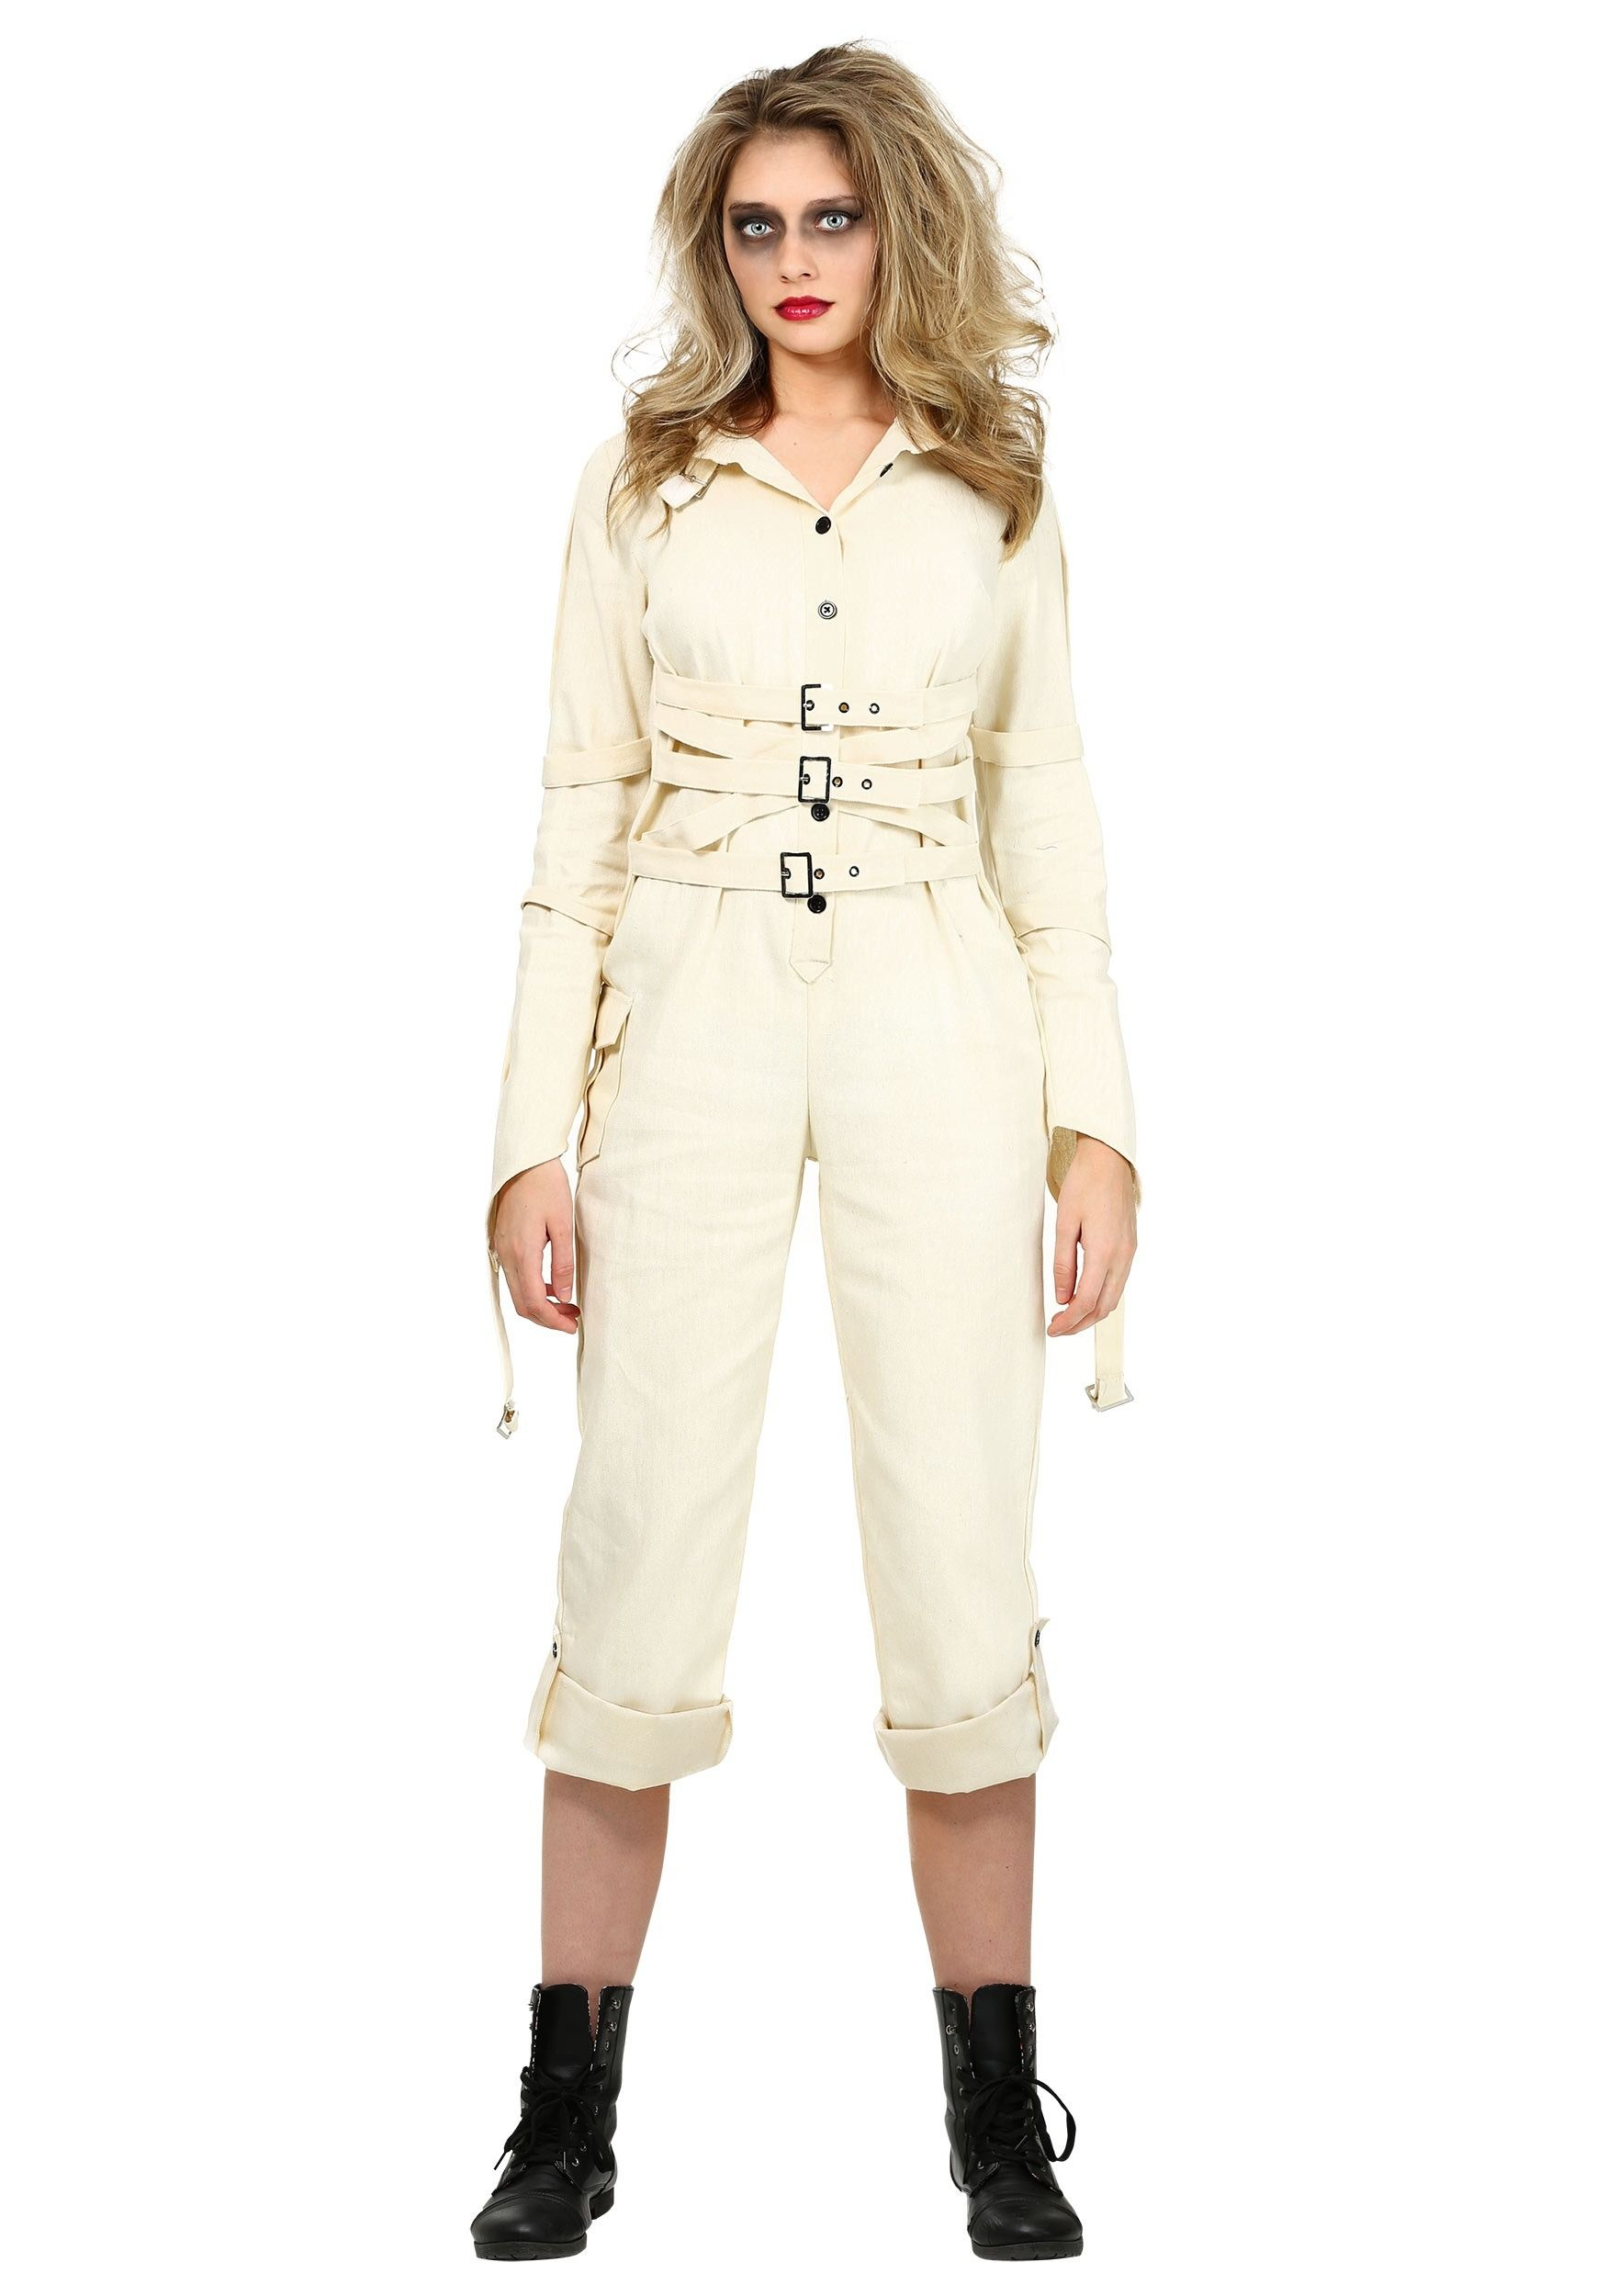 Women's Halloween costume ideas - Stand out among your friends and ...